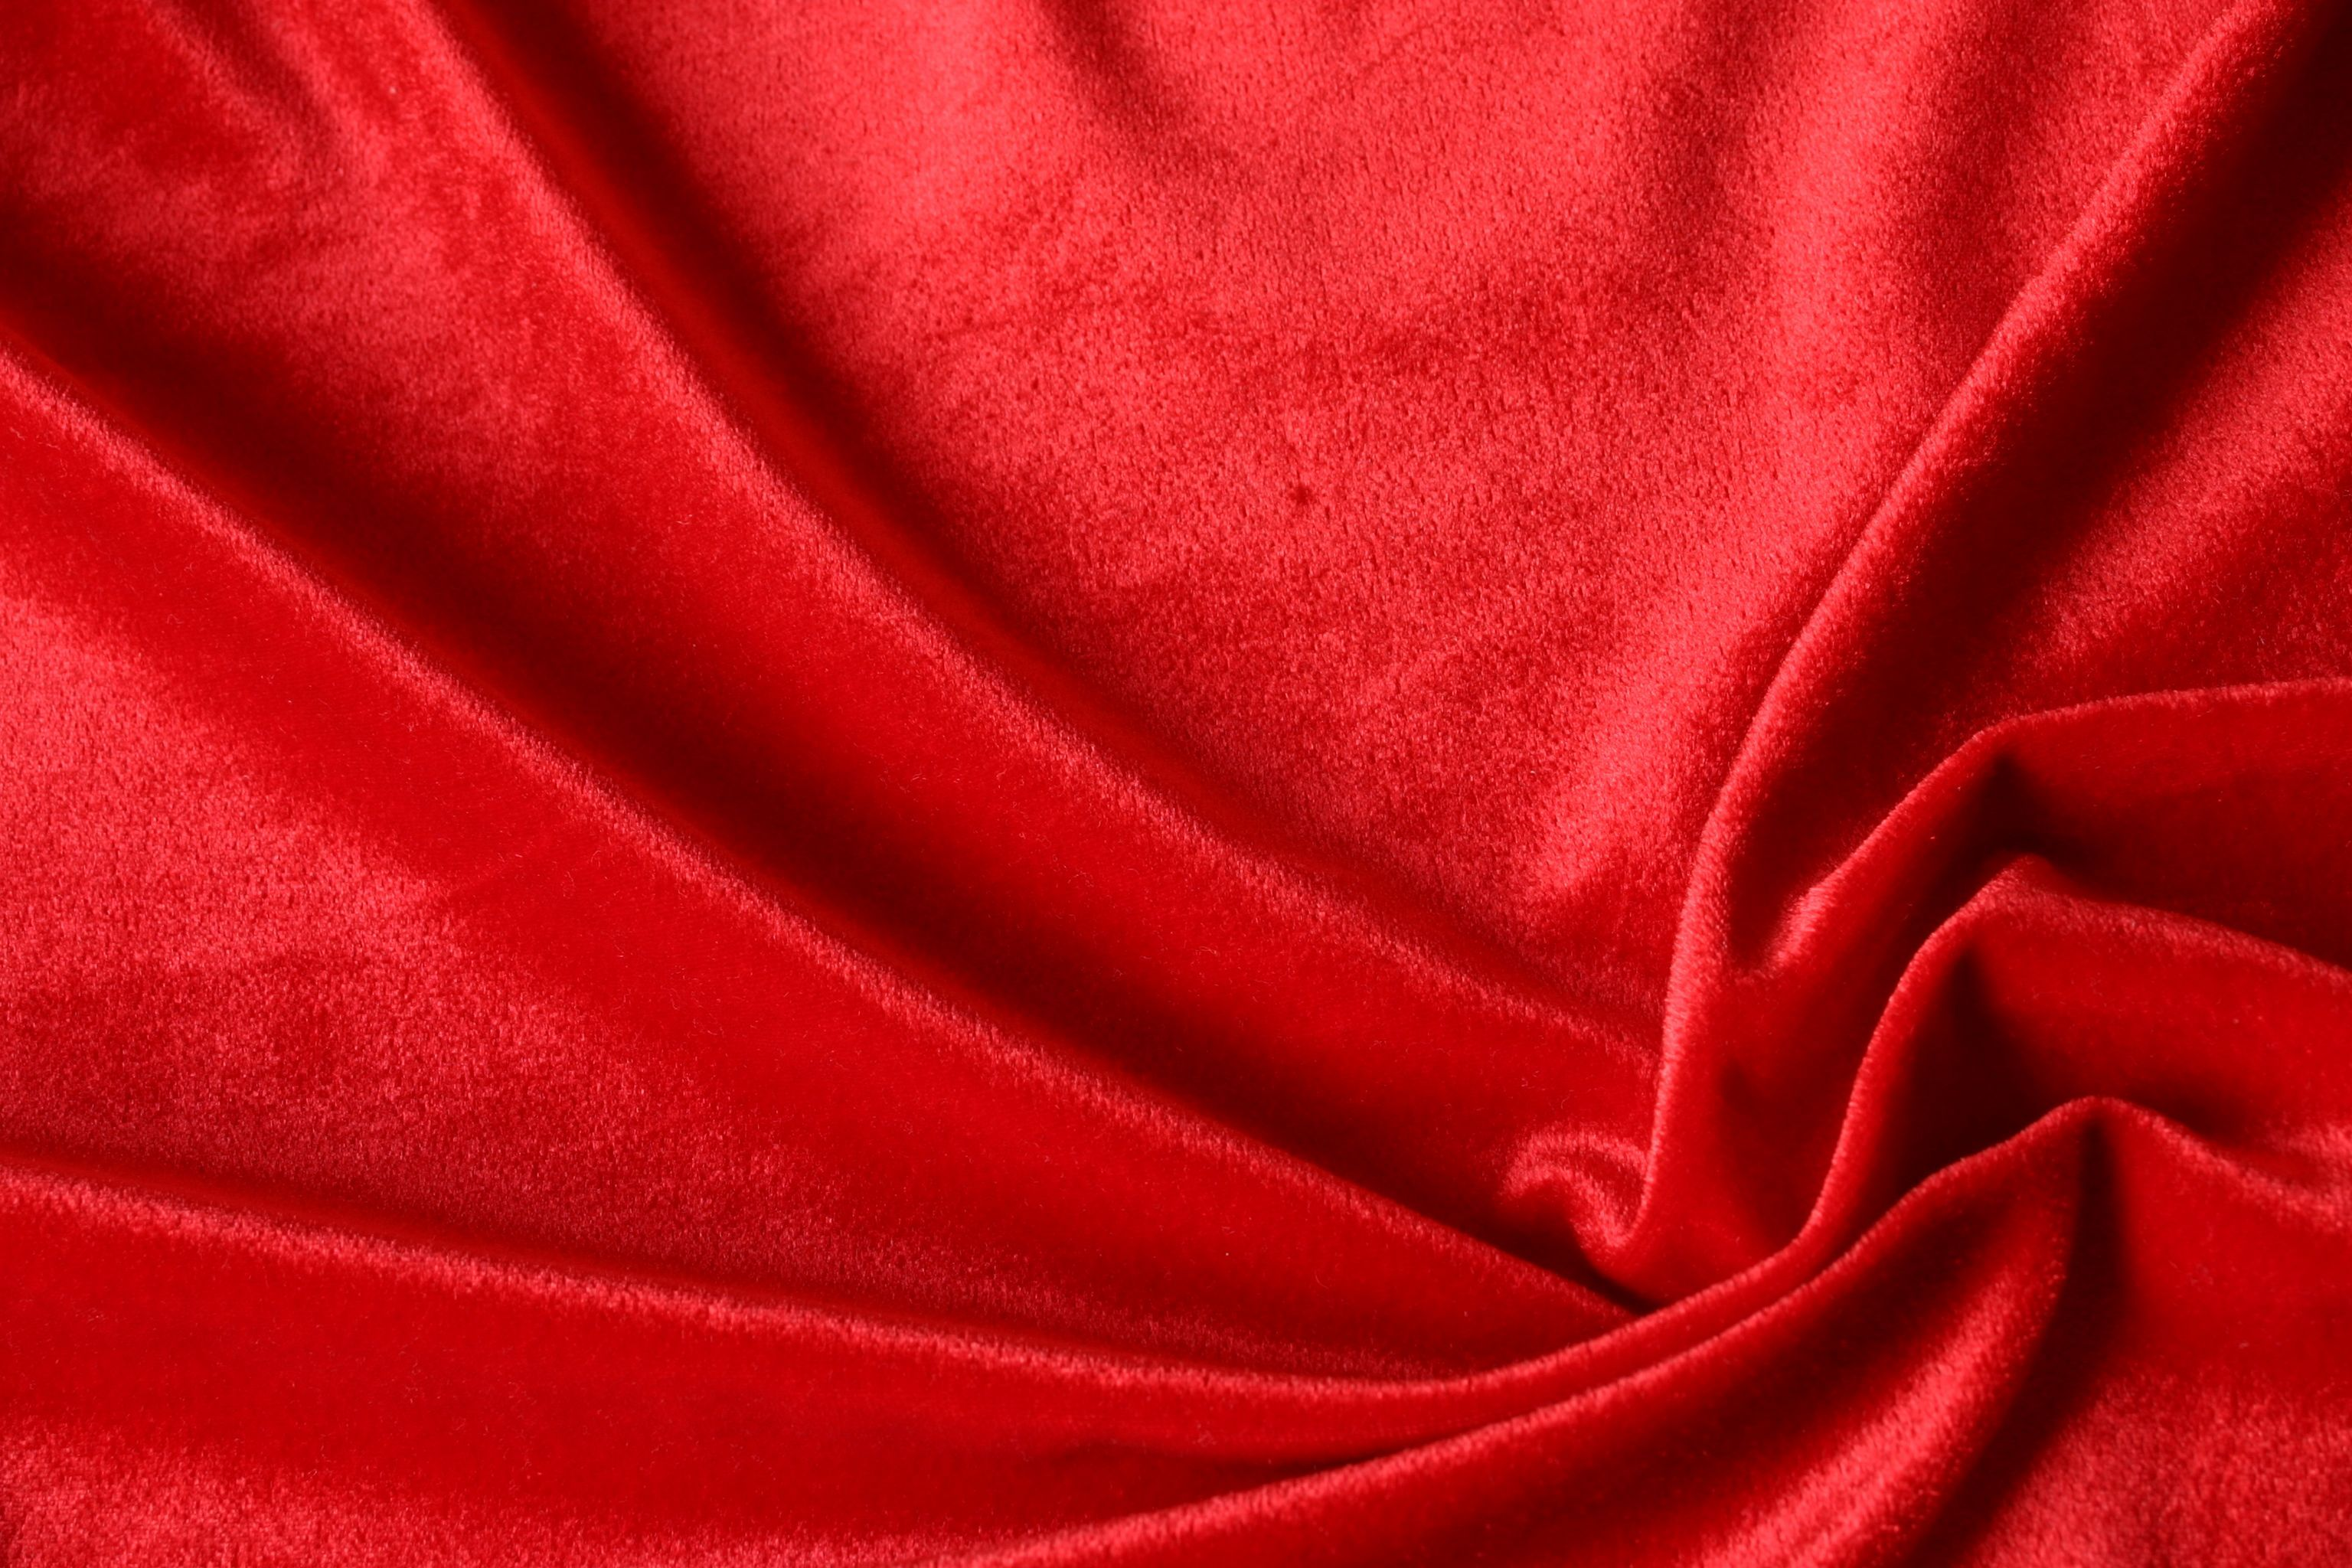 The Red Velvet A Structure Background Texture